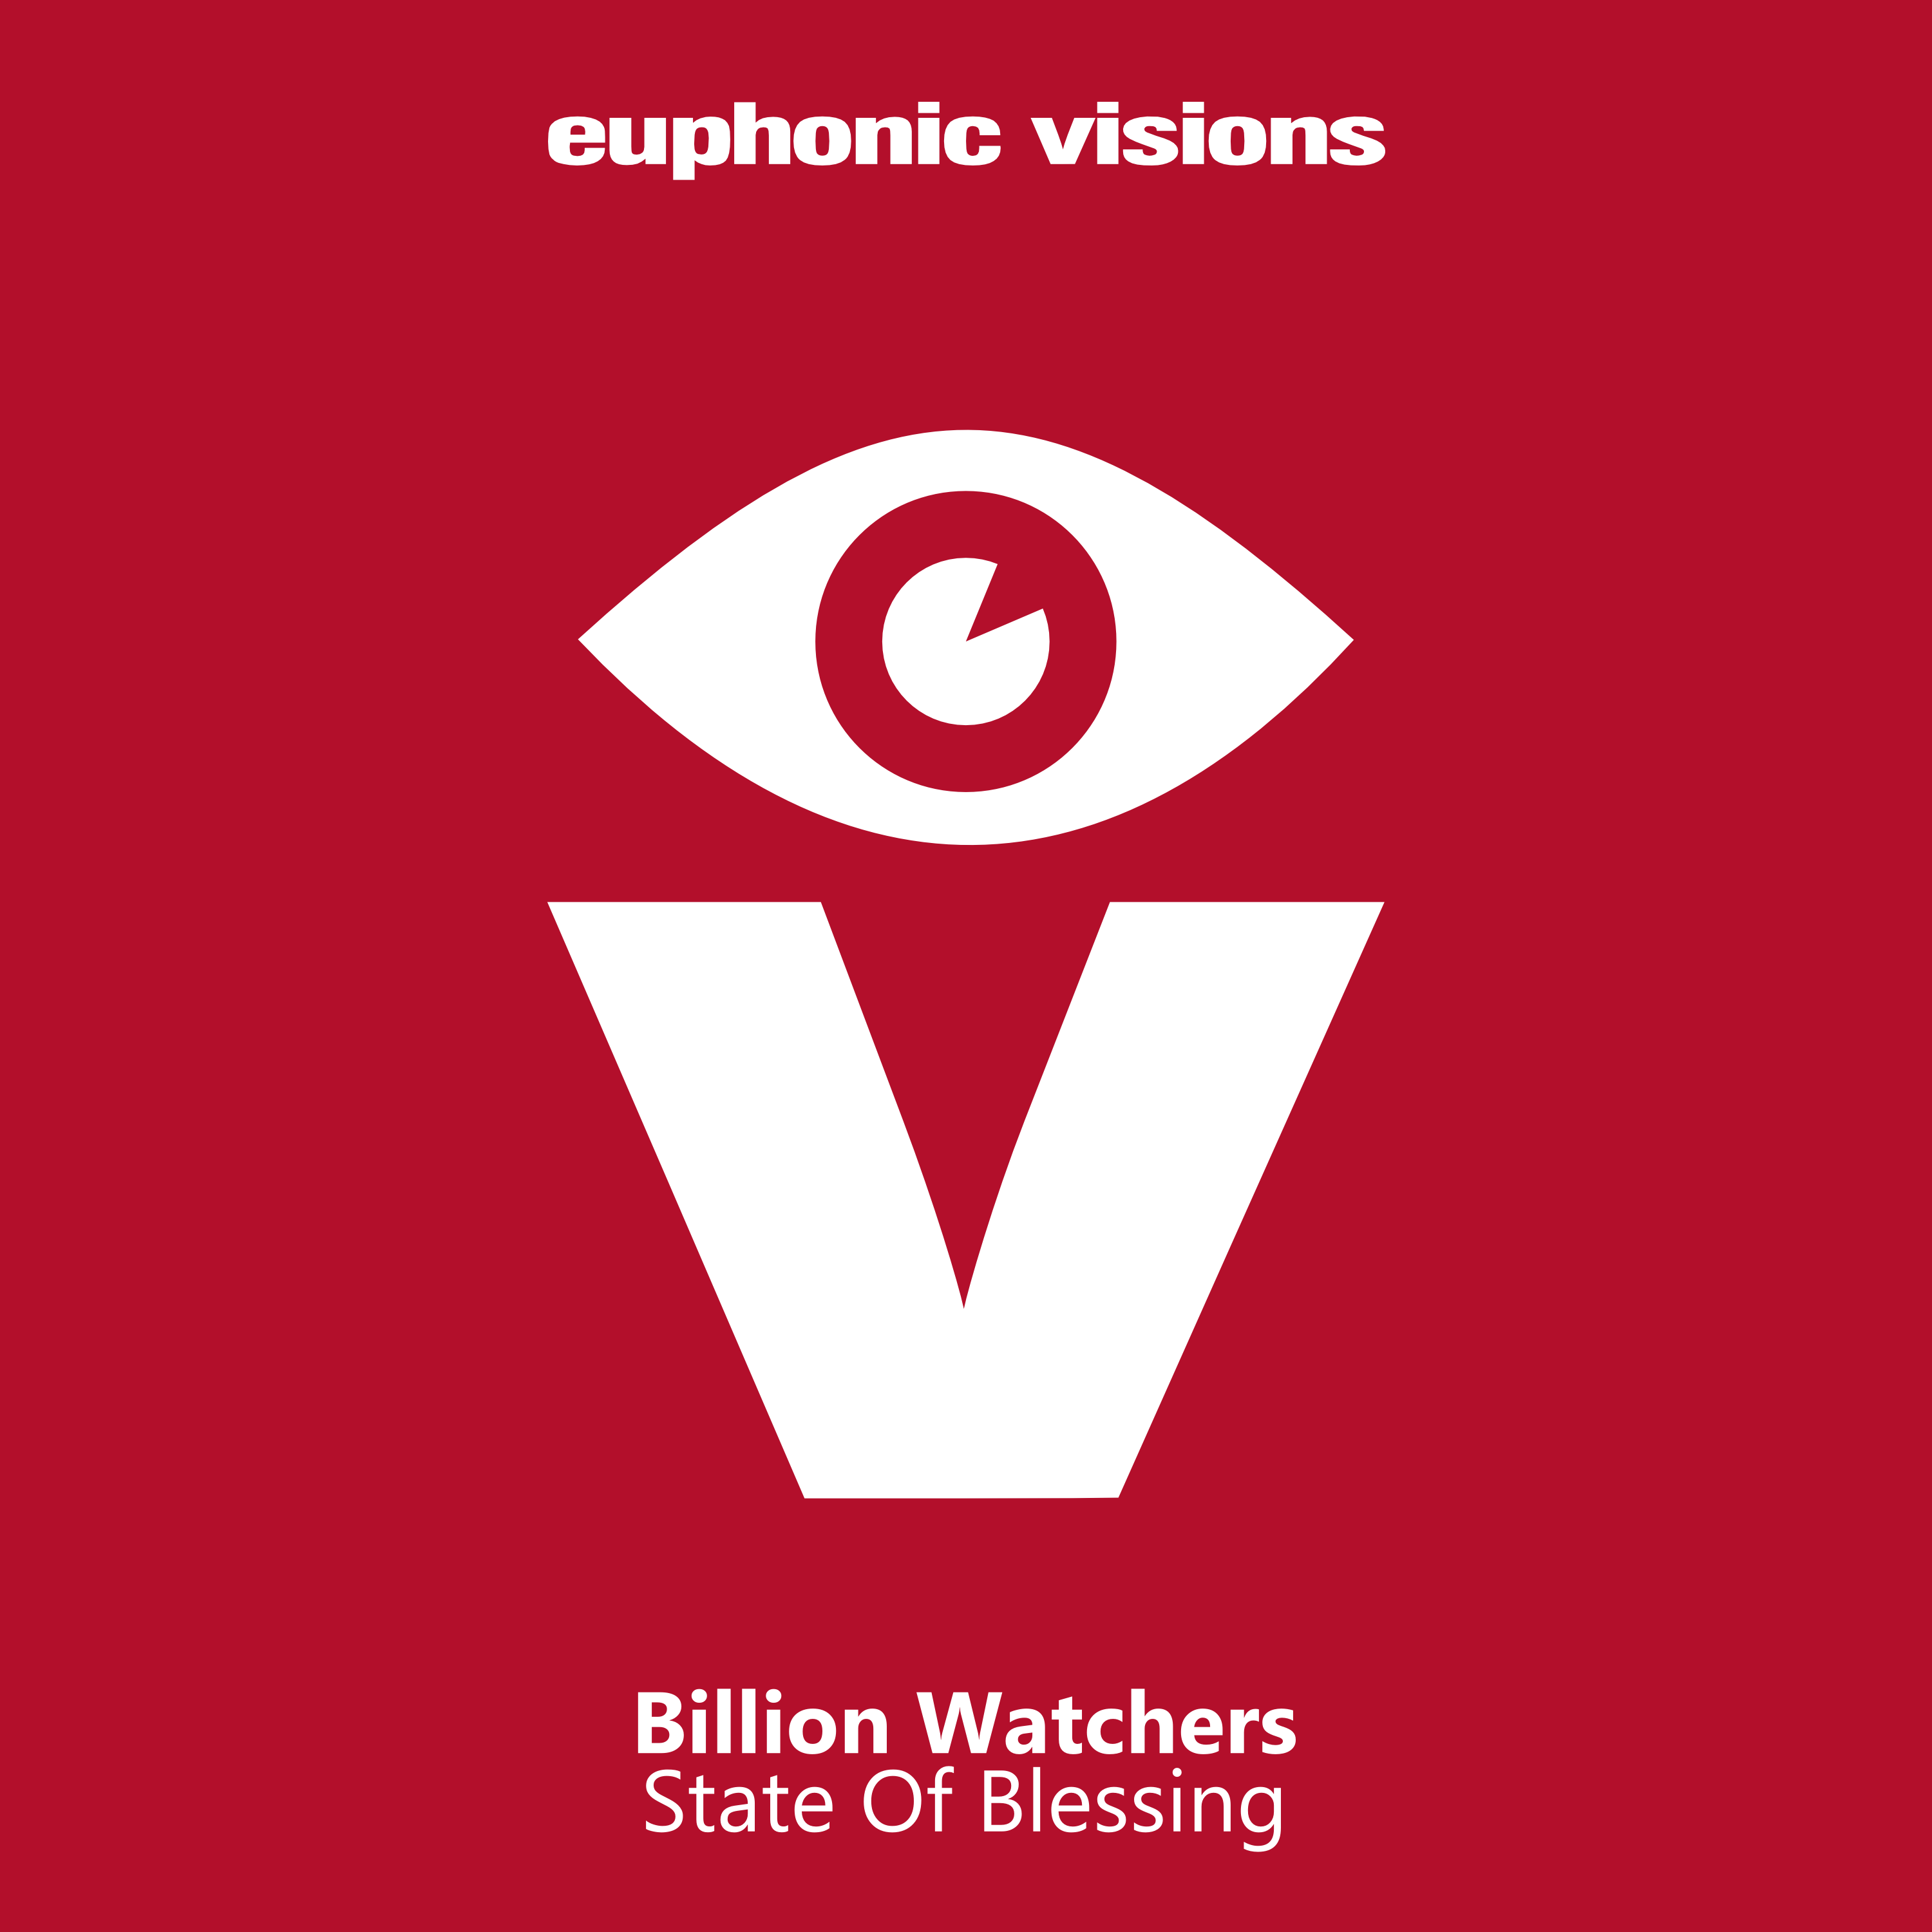 Billion Watchers - State of Blessing